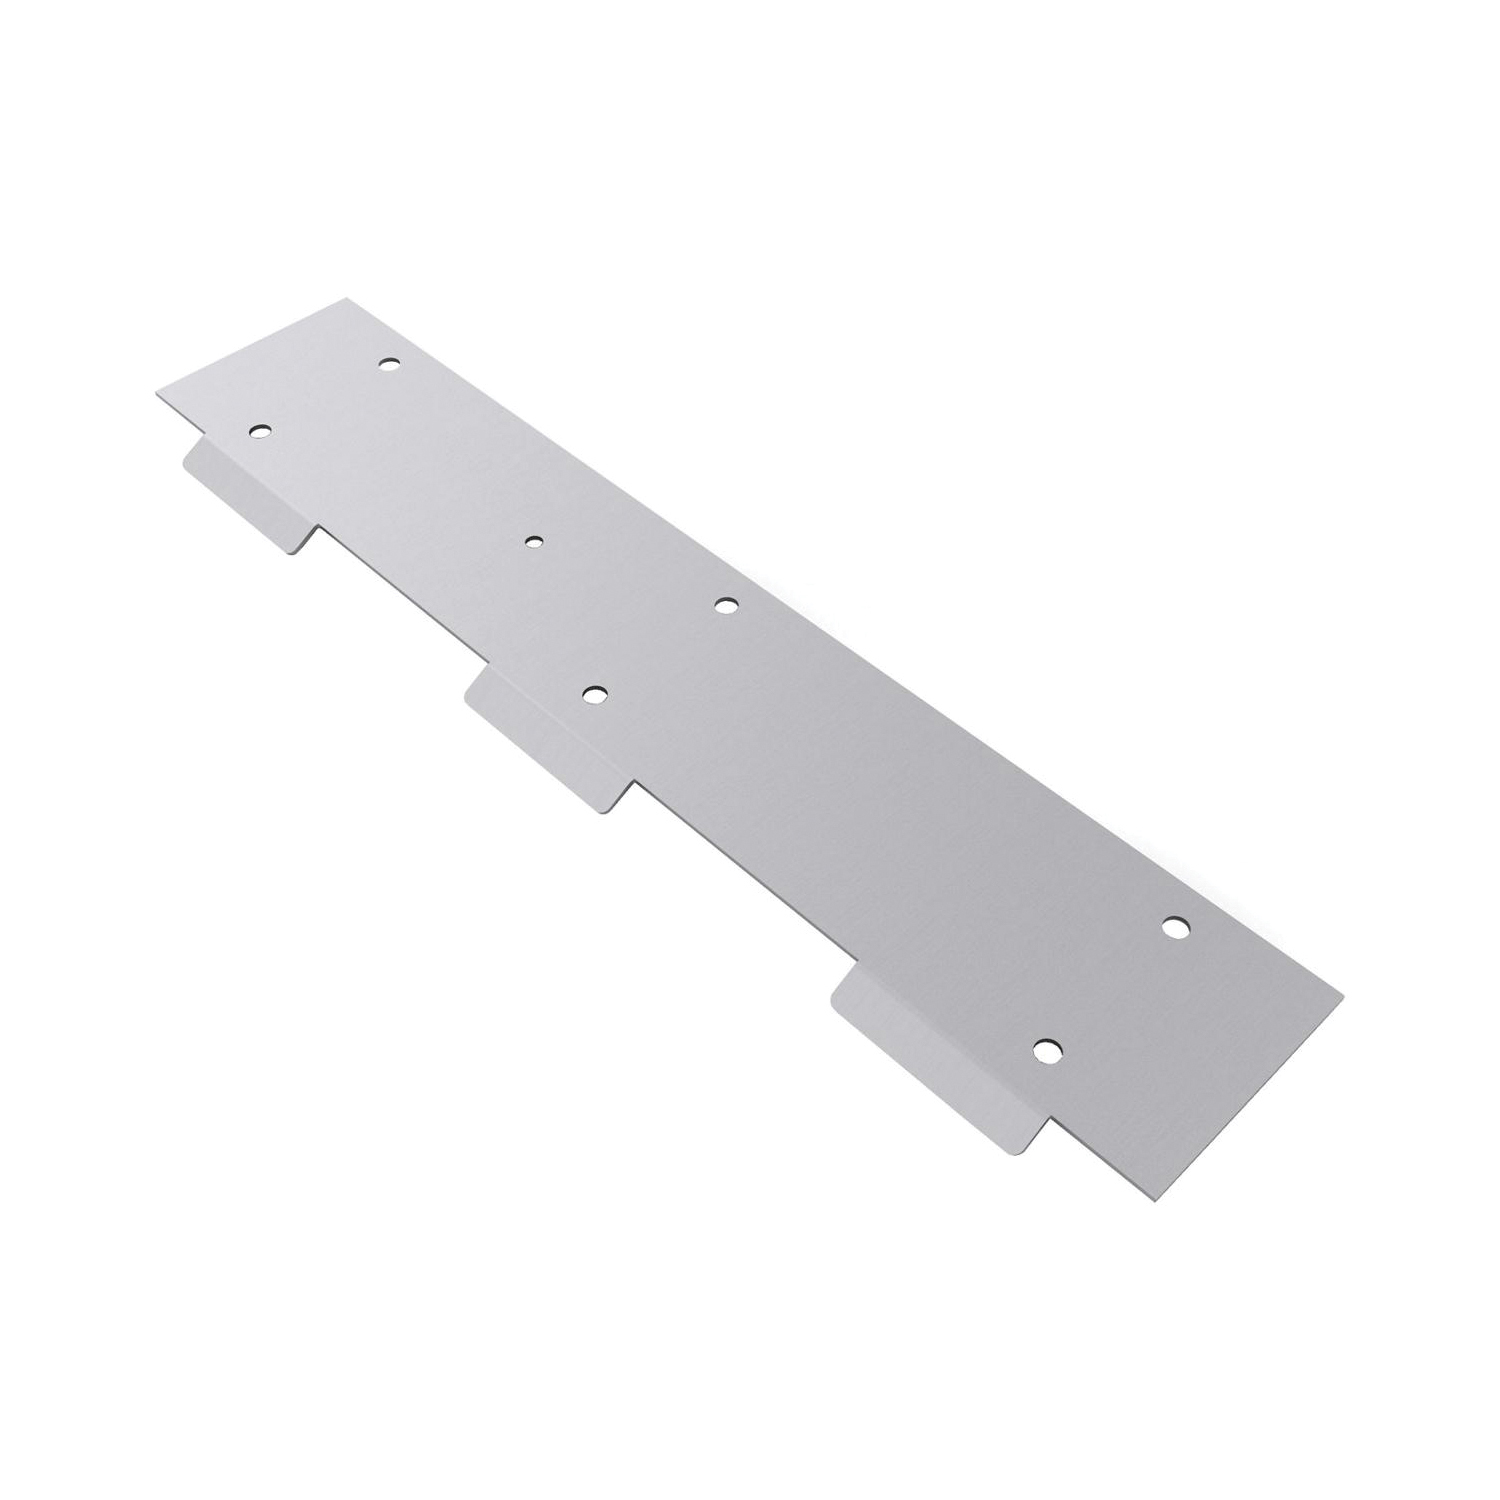 Elkay® 28401C LKC/HT Replacement Hanger Bracket, For Use With EZ Series Water Cooler, Domestic